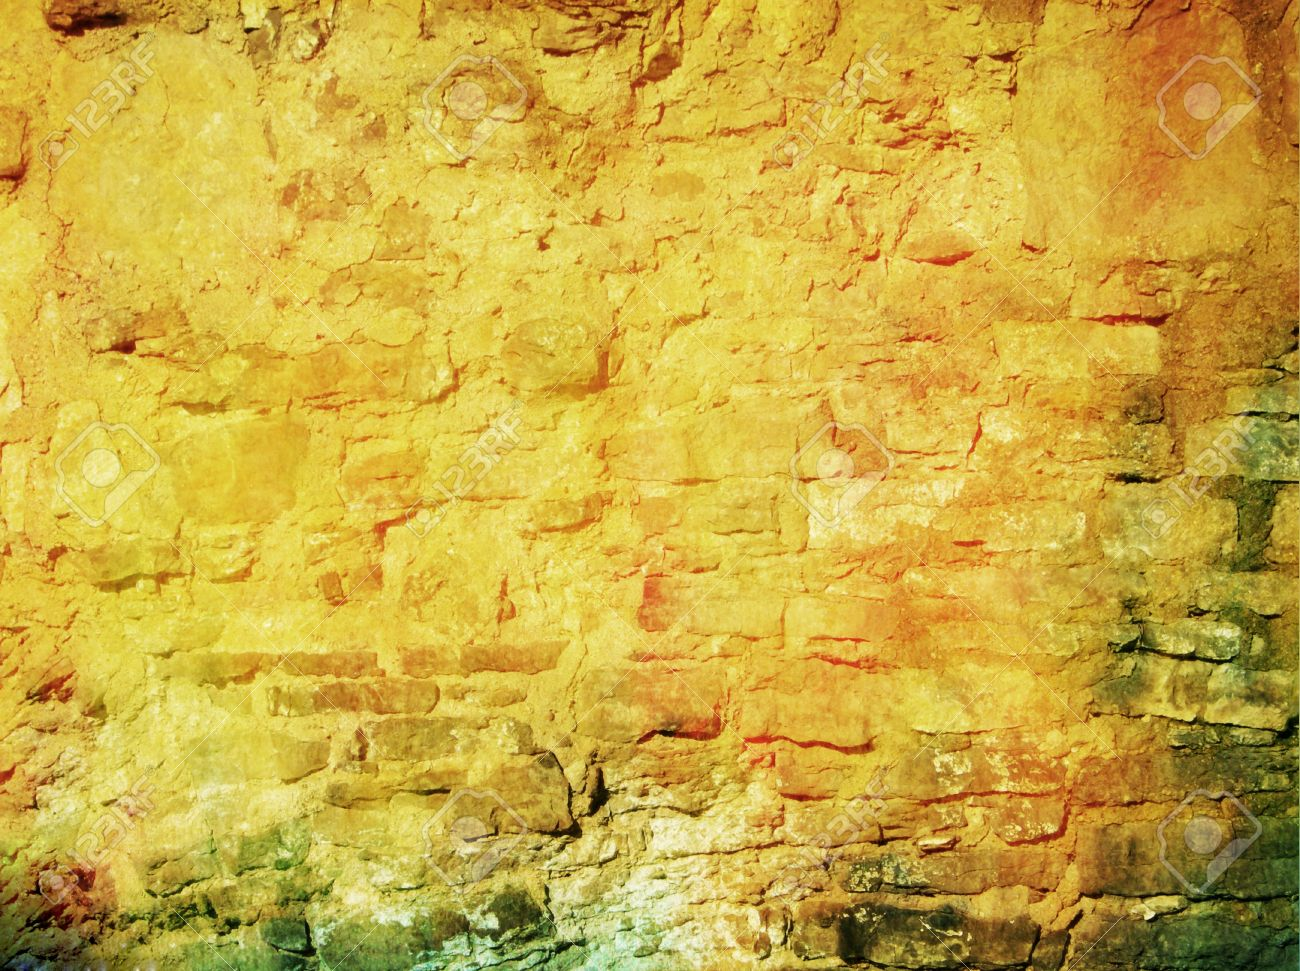 Old Ragged Wall: Abstract Textured Background With Red, Brown ...